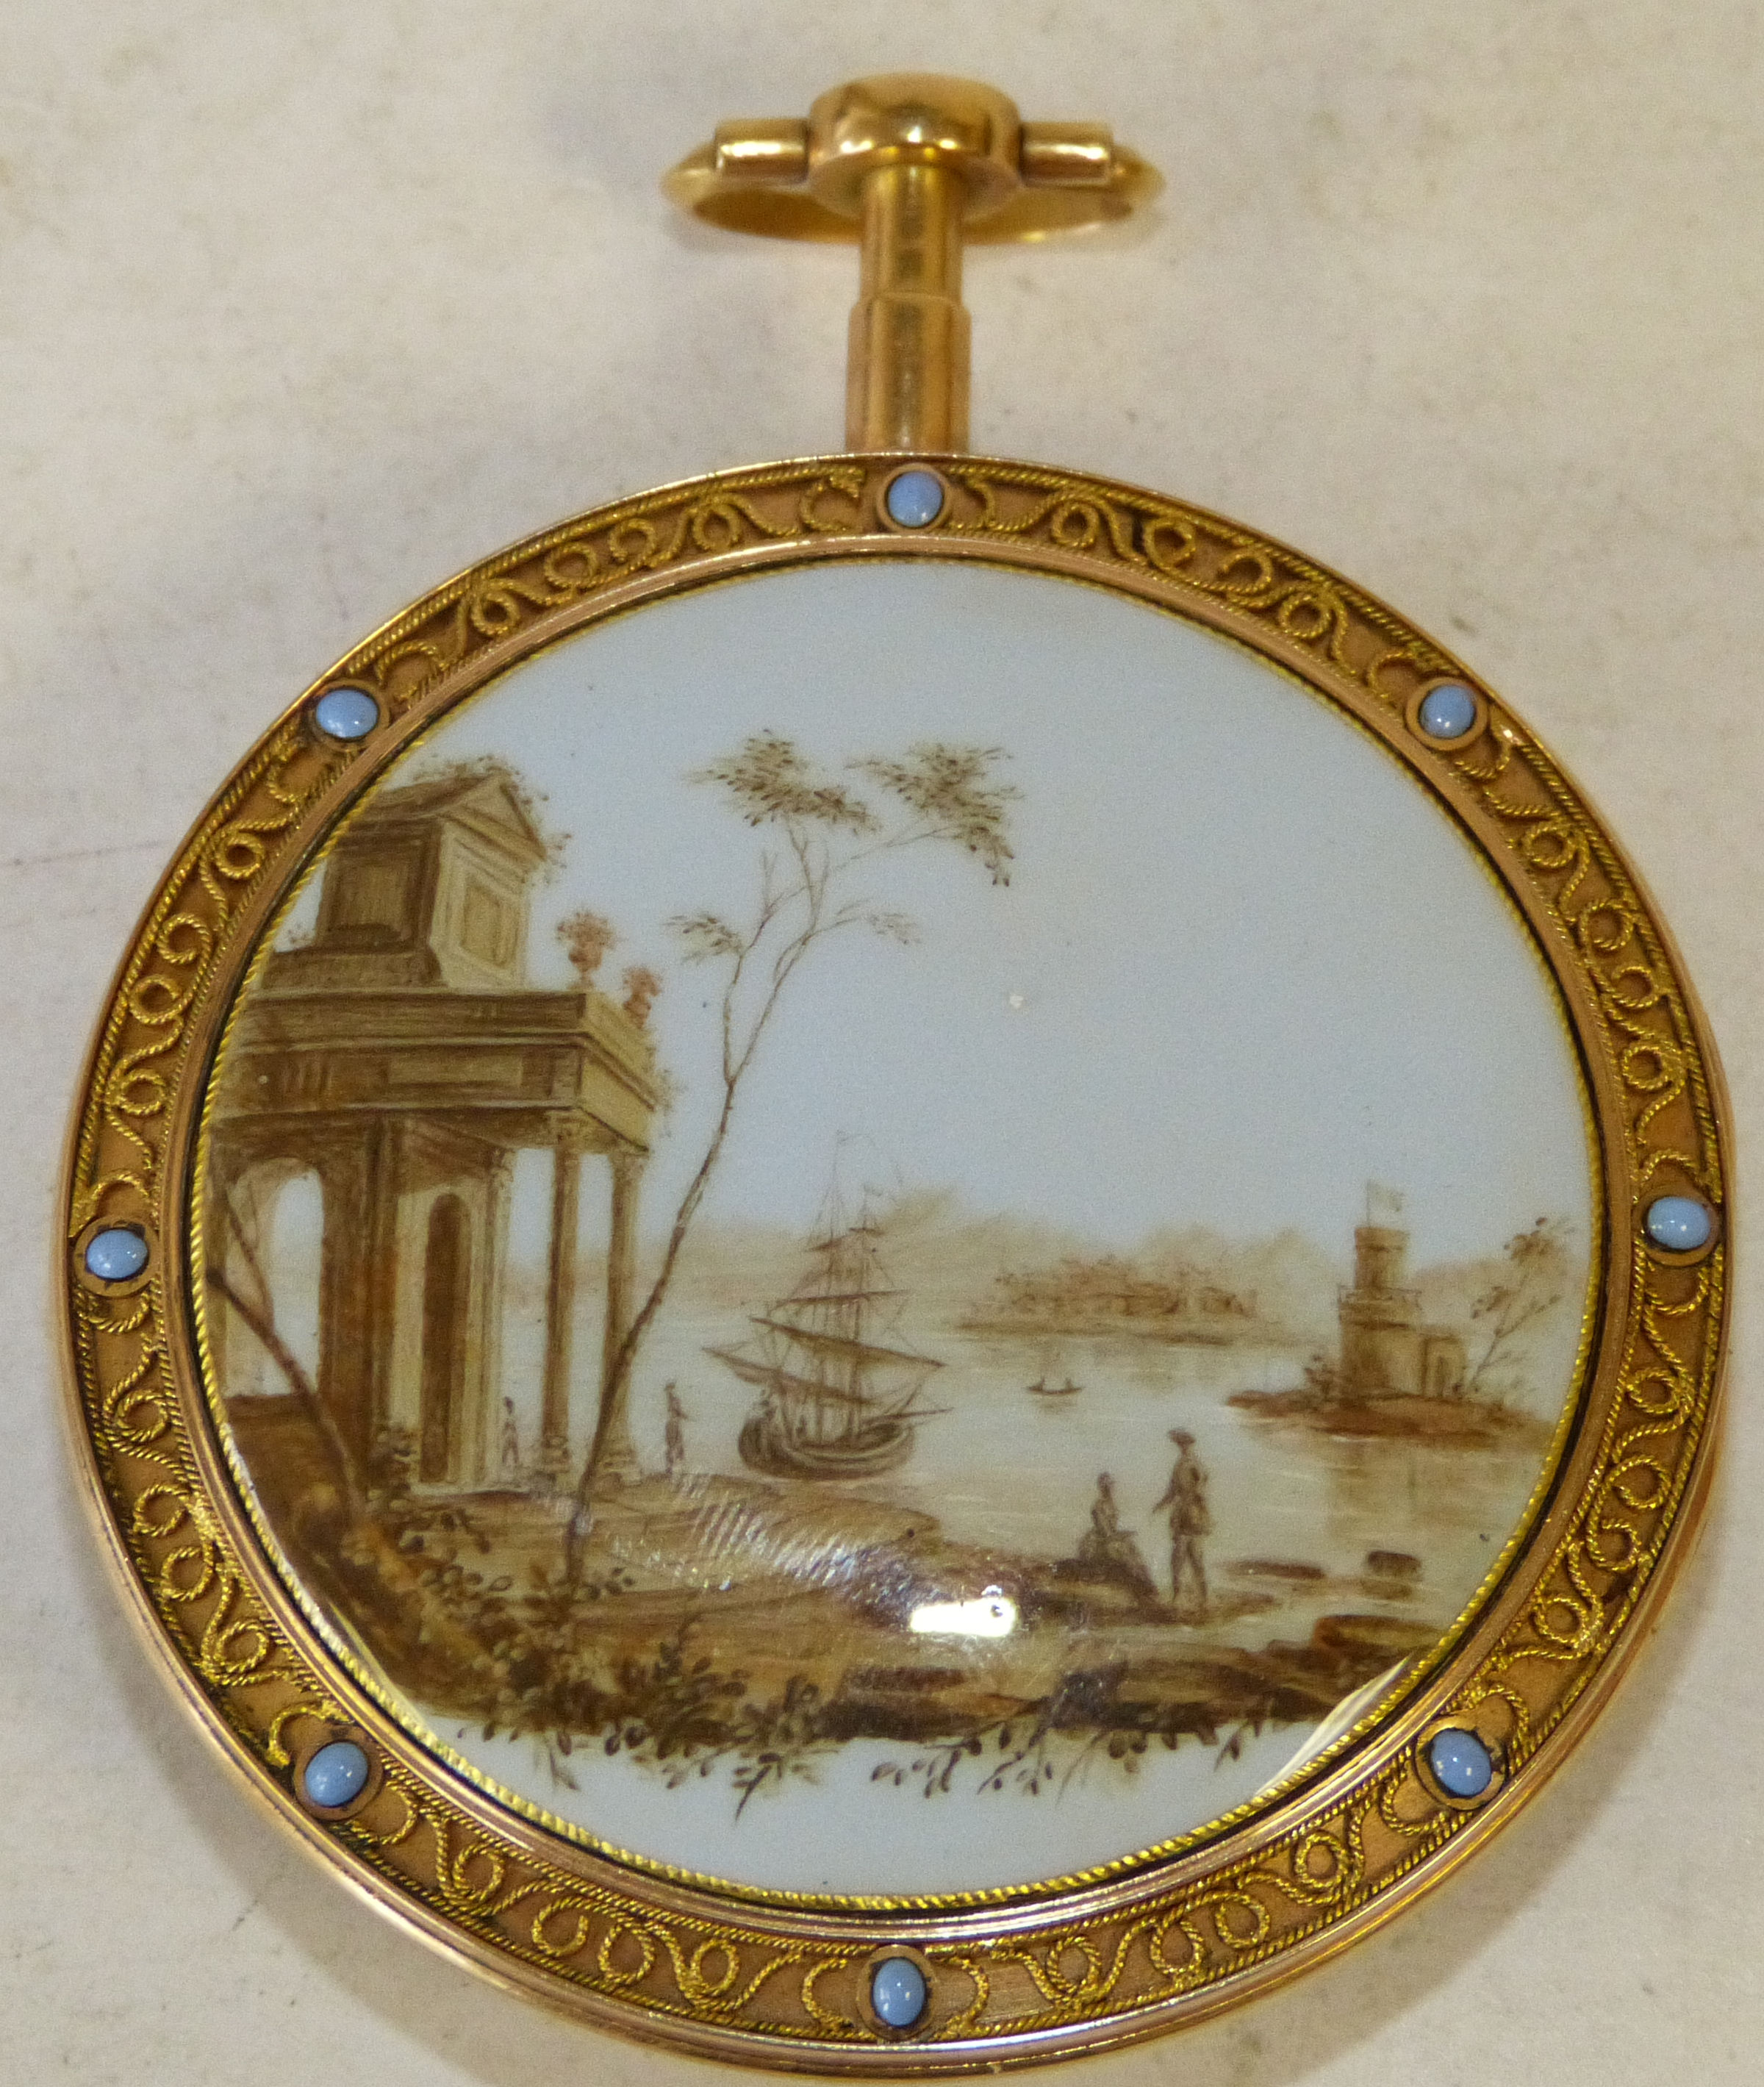 Pierre Gregson High Carat Gold Pair Cased Pocket Watch with decorated back depicting figures on shore with sailing boats